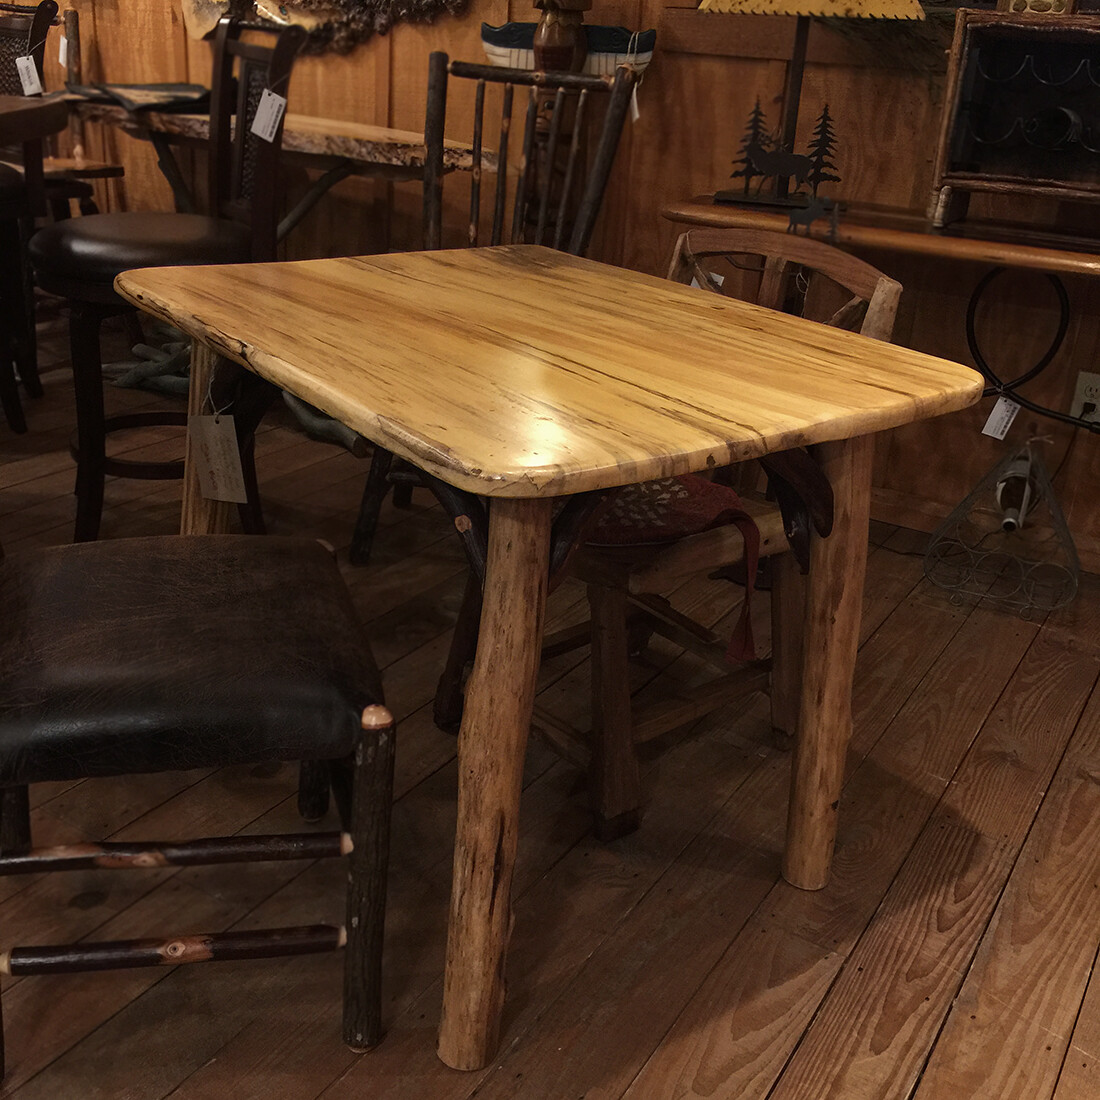 Sycamore Square Breakfast/Game Table